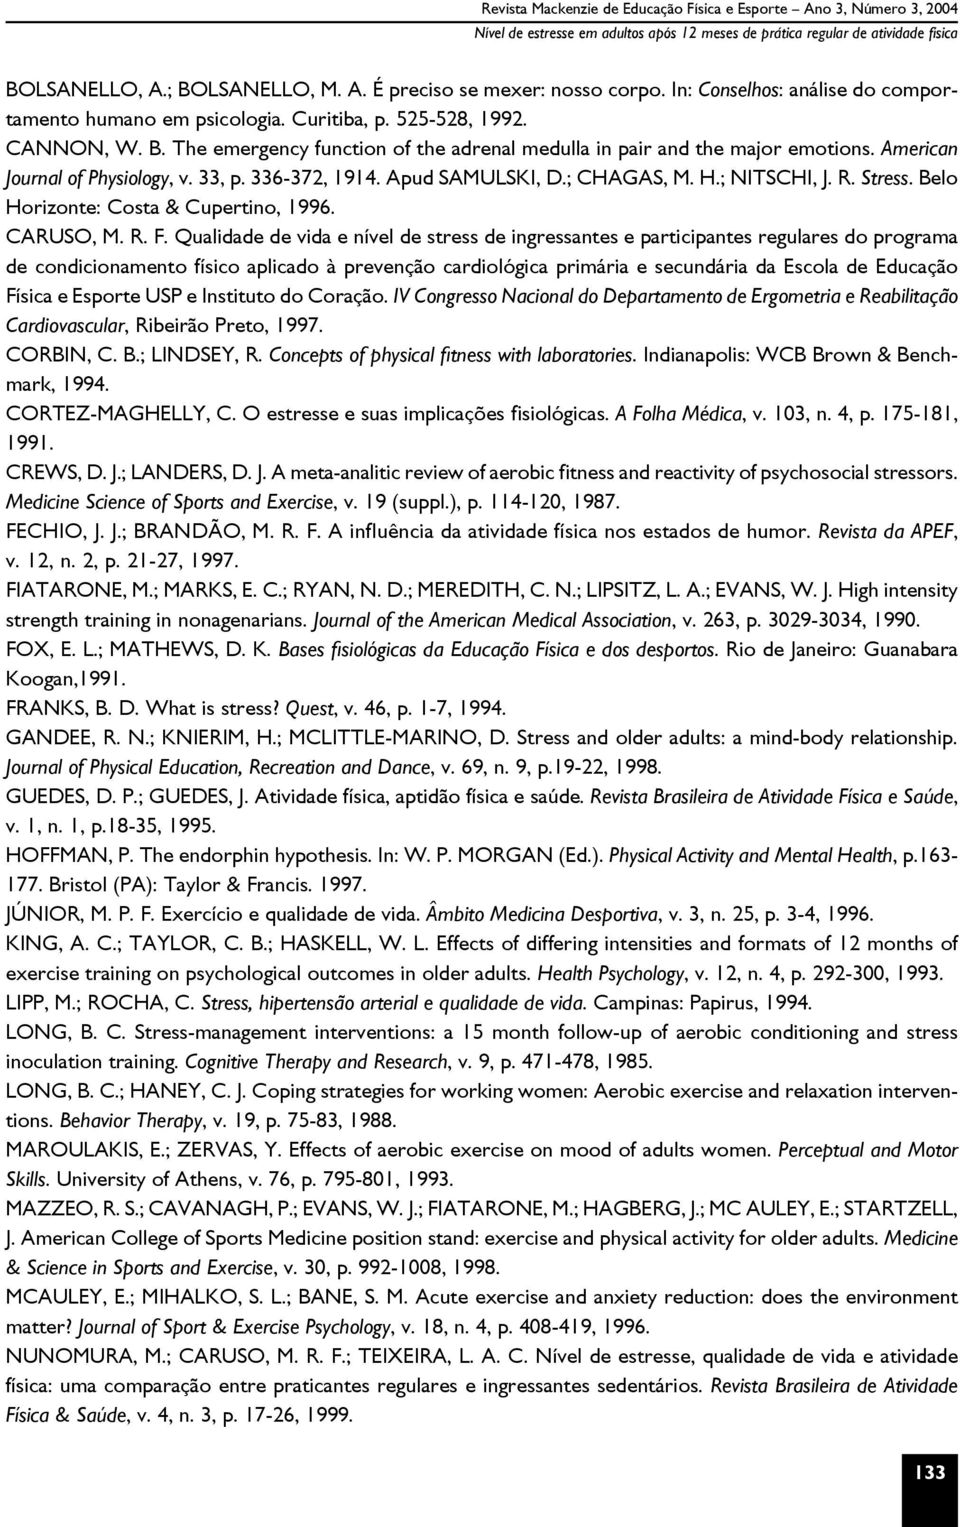 American Journal of Physiology, v. 33, p. 336-372, 1914. Apud SAMULSKI, D.; CHAGAS, M. H.; NITSCHI, J. R. Stress. Belo Horizonte: Costa & Cupertino, 1996. CARUSO, M. R. F.